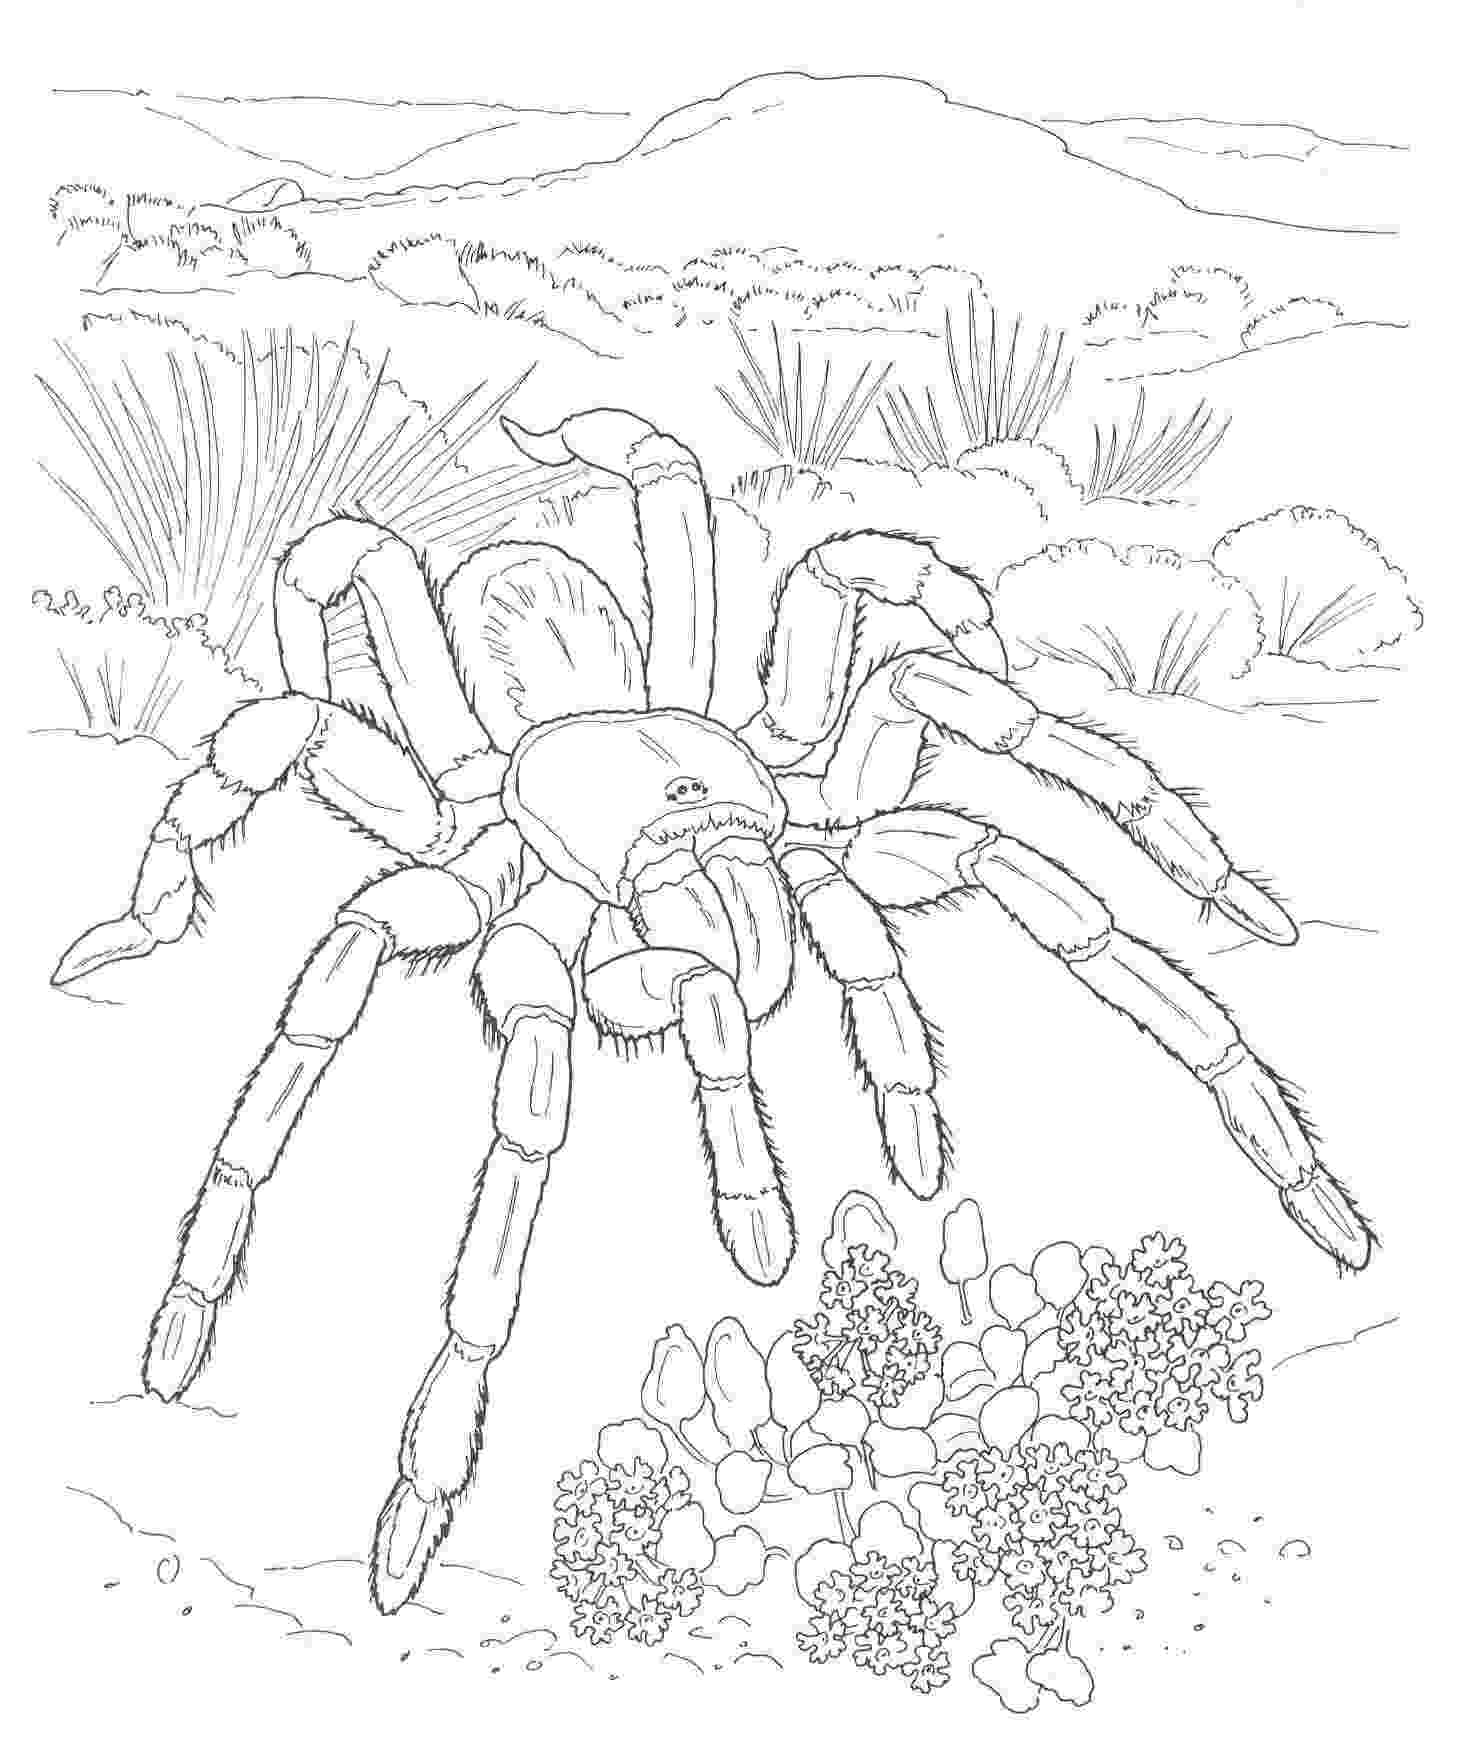 free printable coloring pages of desert animals free printable desert coloring pages sketch coloring page free pages animals desert printable of coloring